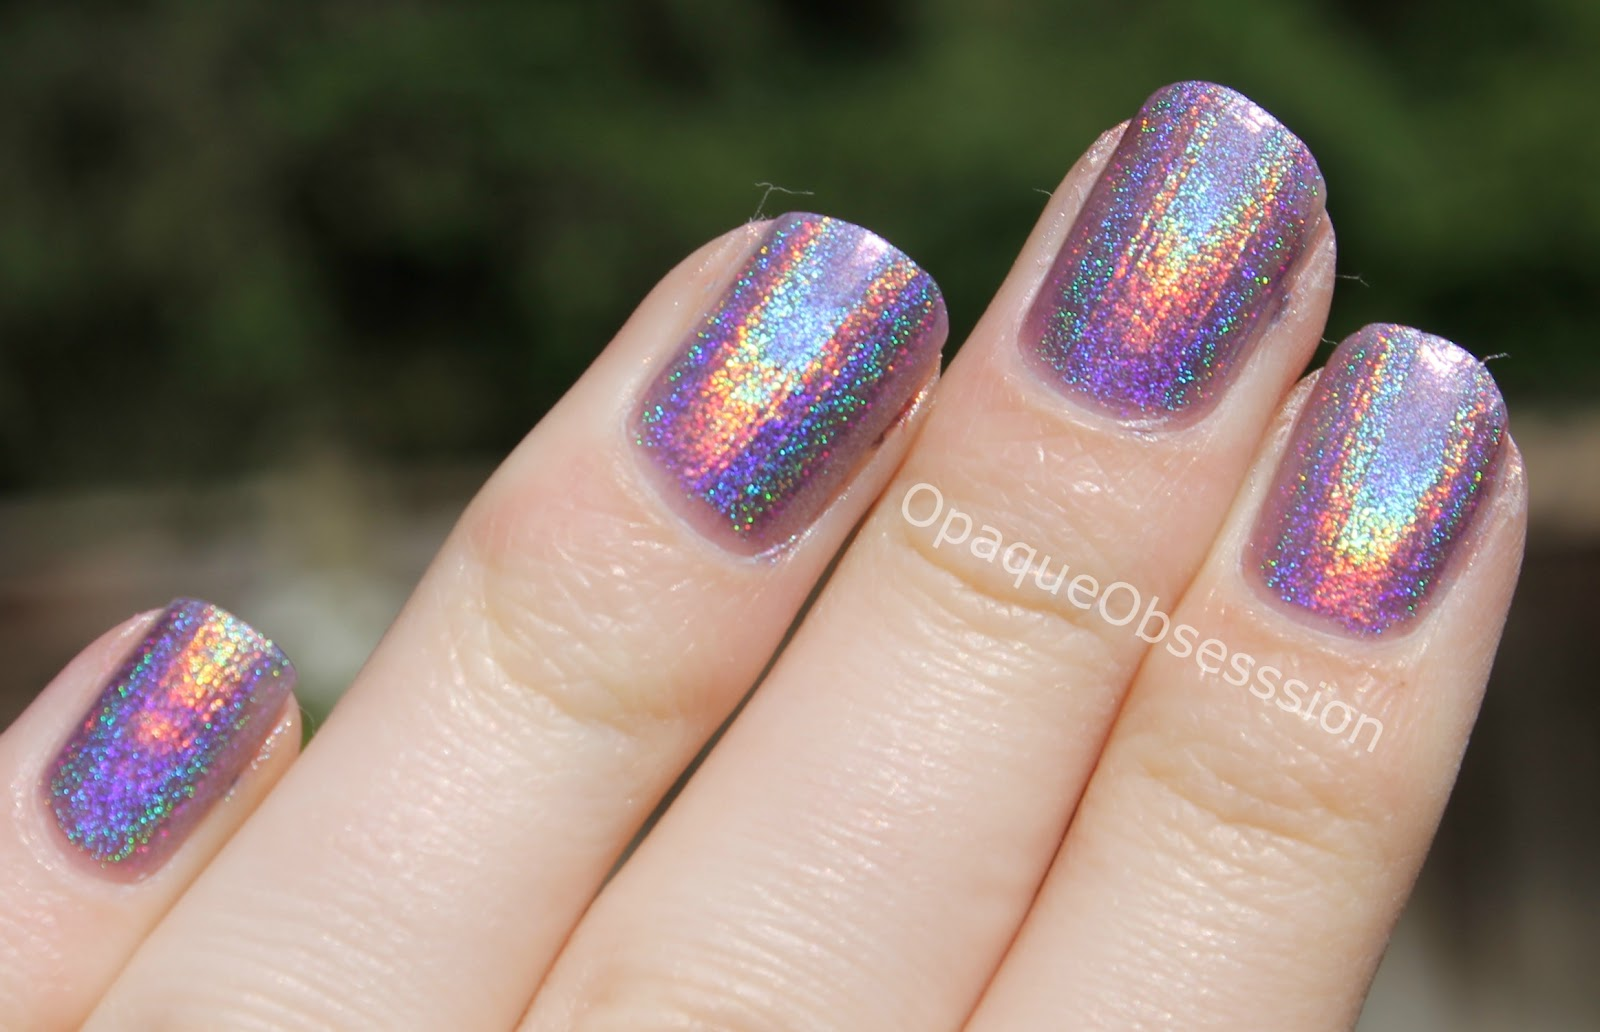 OpaqueObsesssion: The Most Beautiful Nail Polish You Will ...